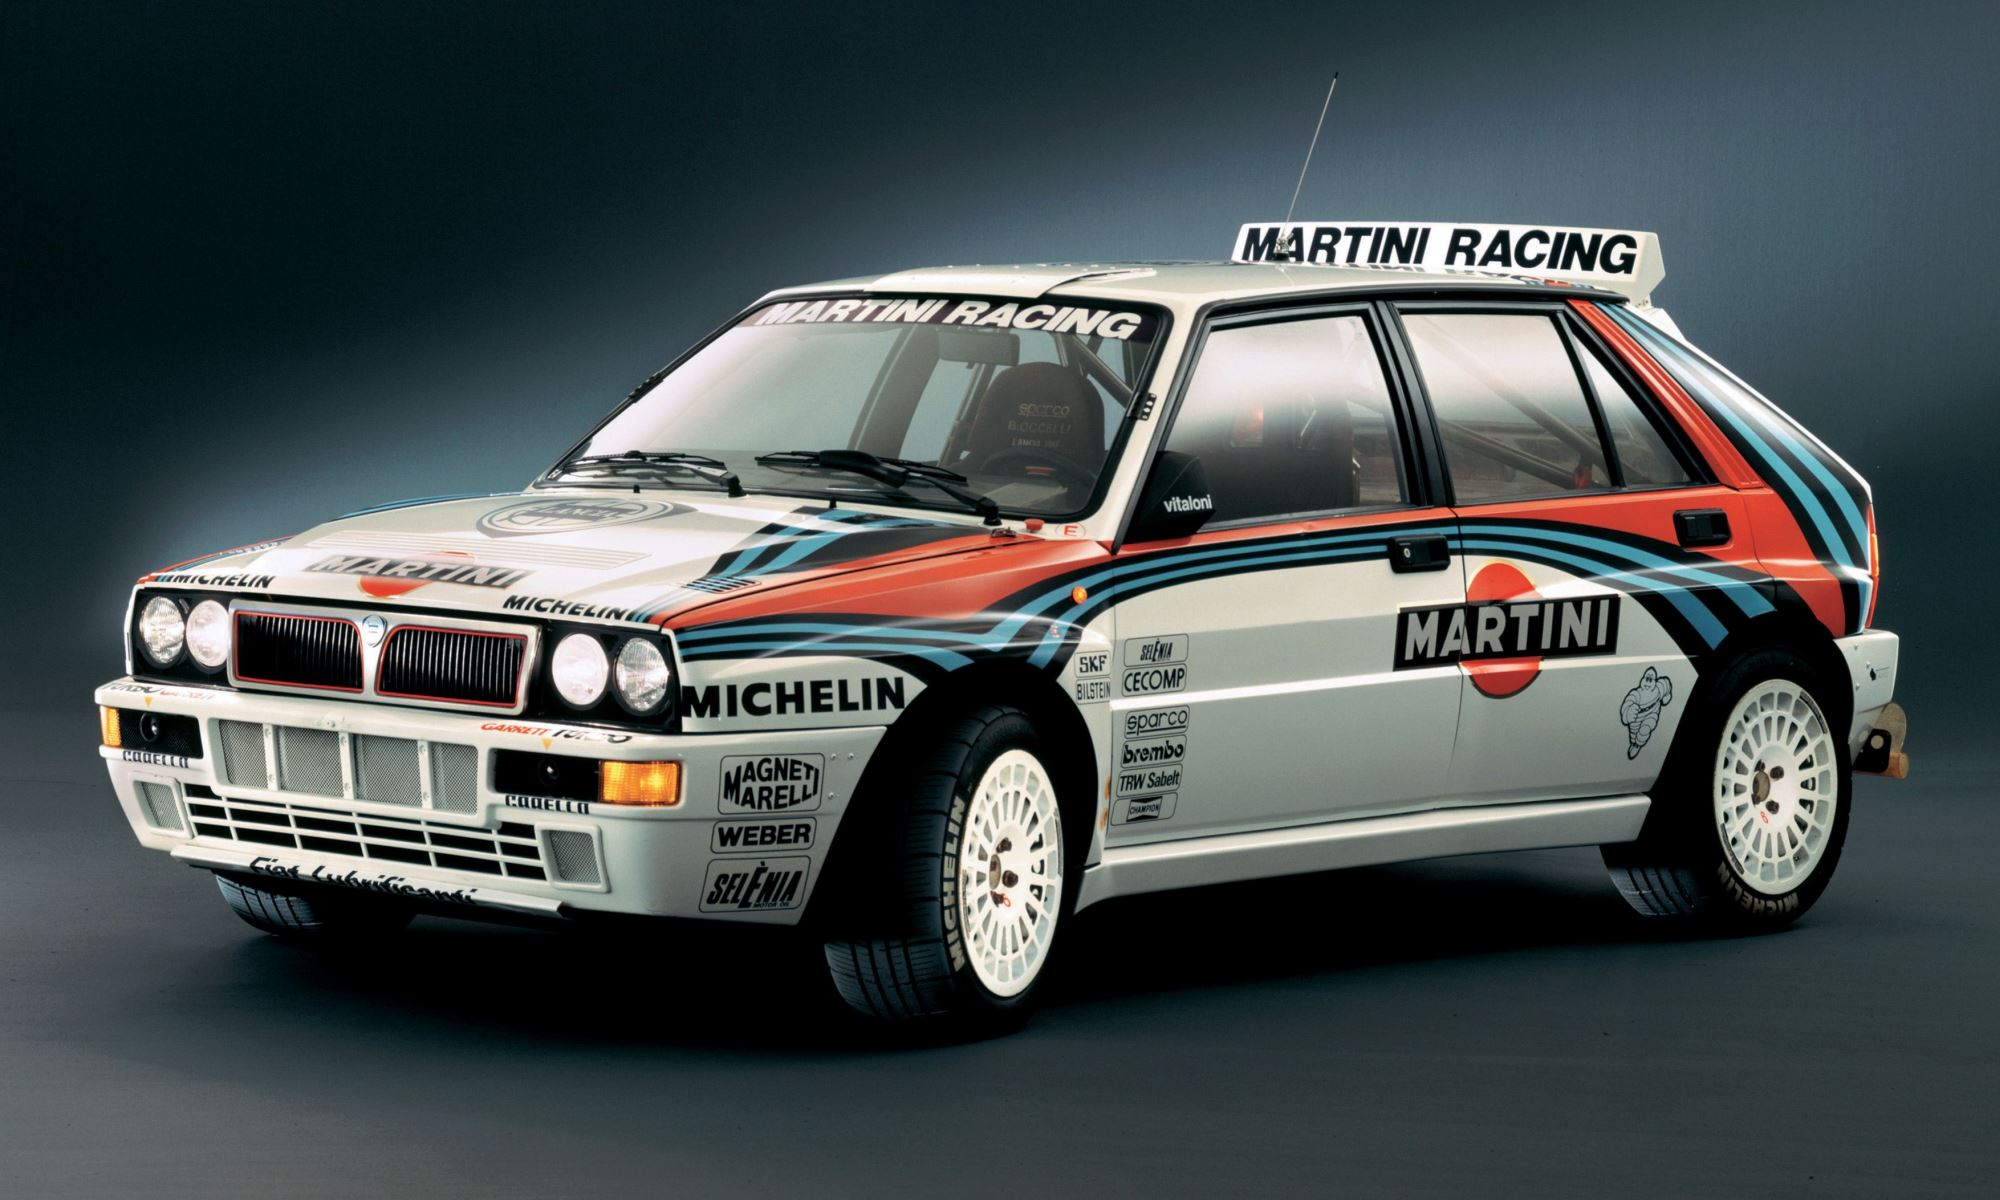 Lancia Delta HF Integrale 16v Group A